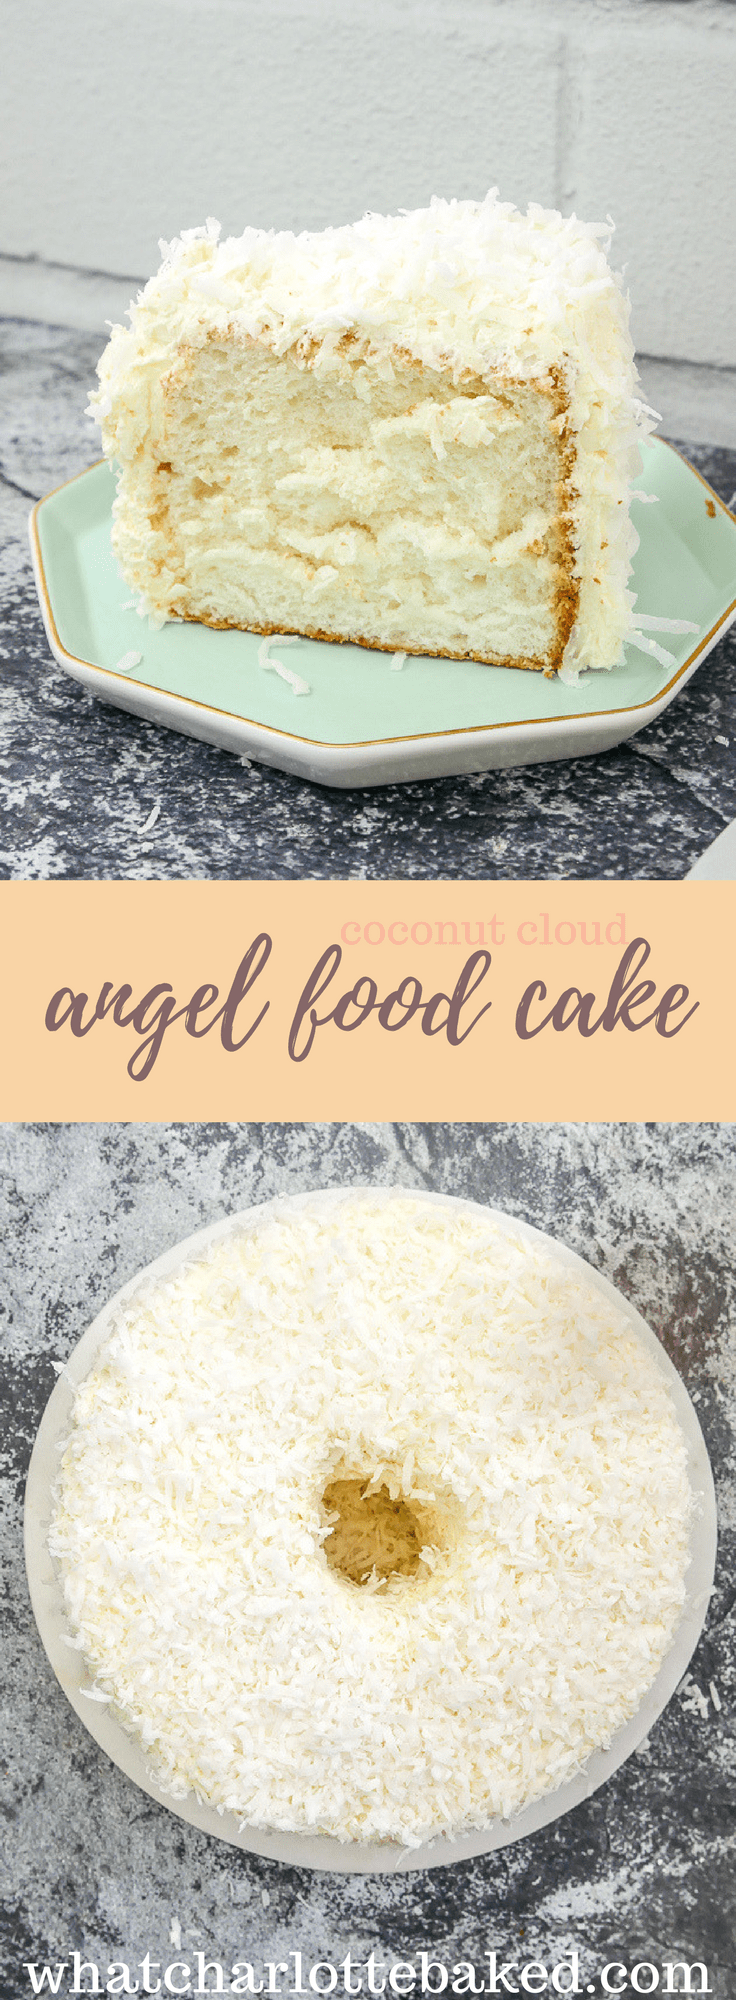 Coconut Angel Food Cake recipe | What Charlotte Baked